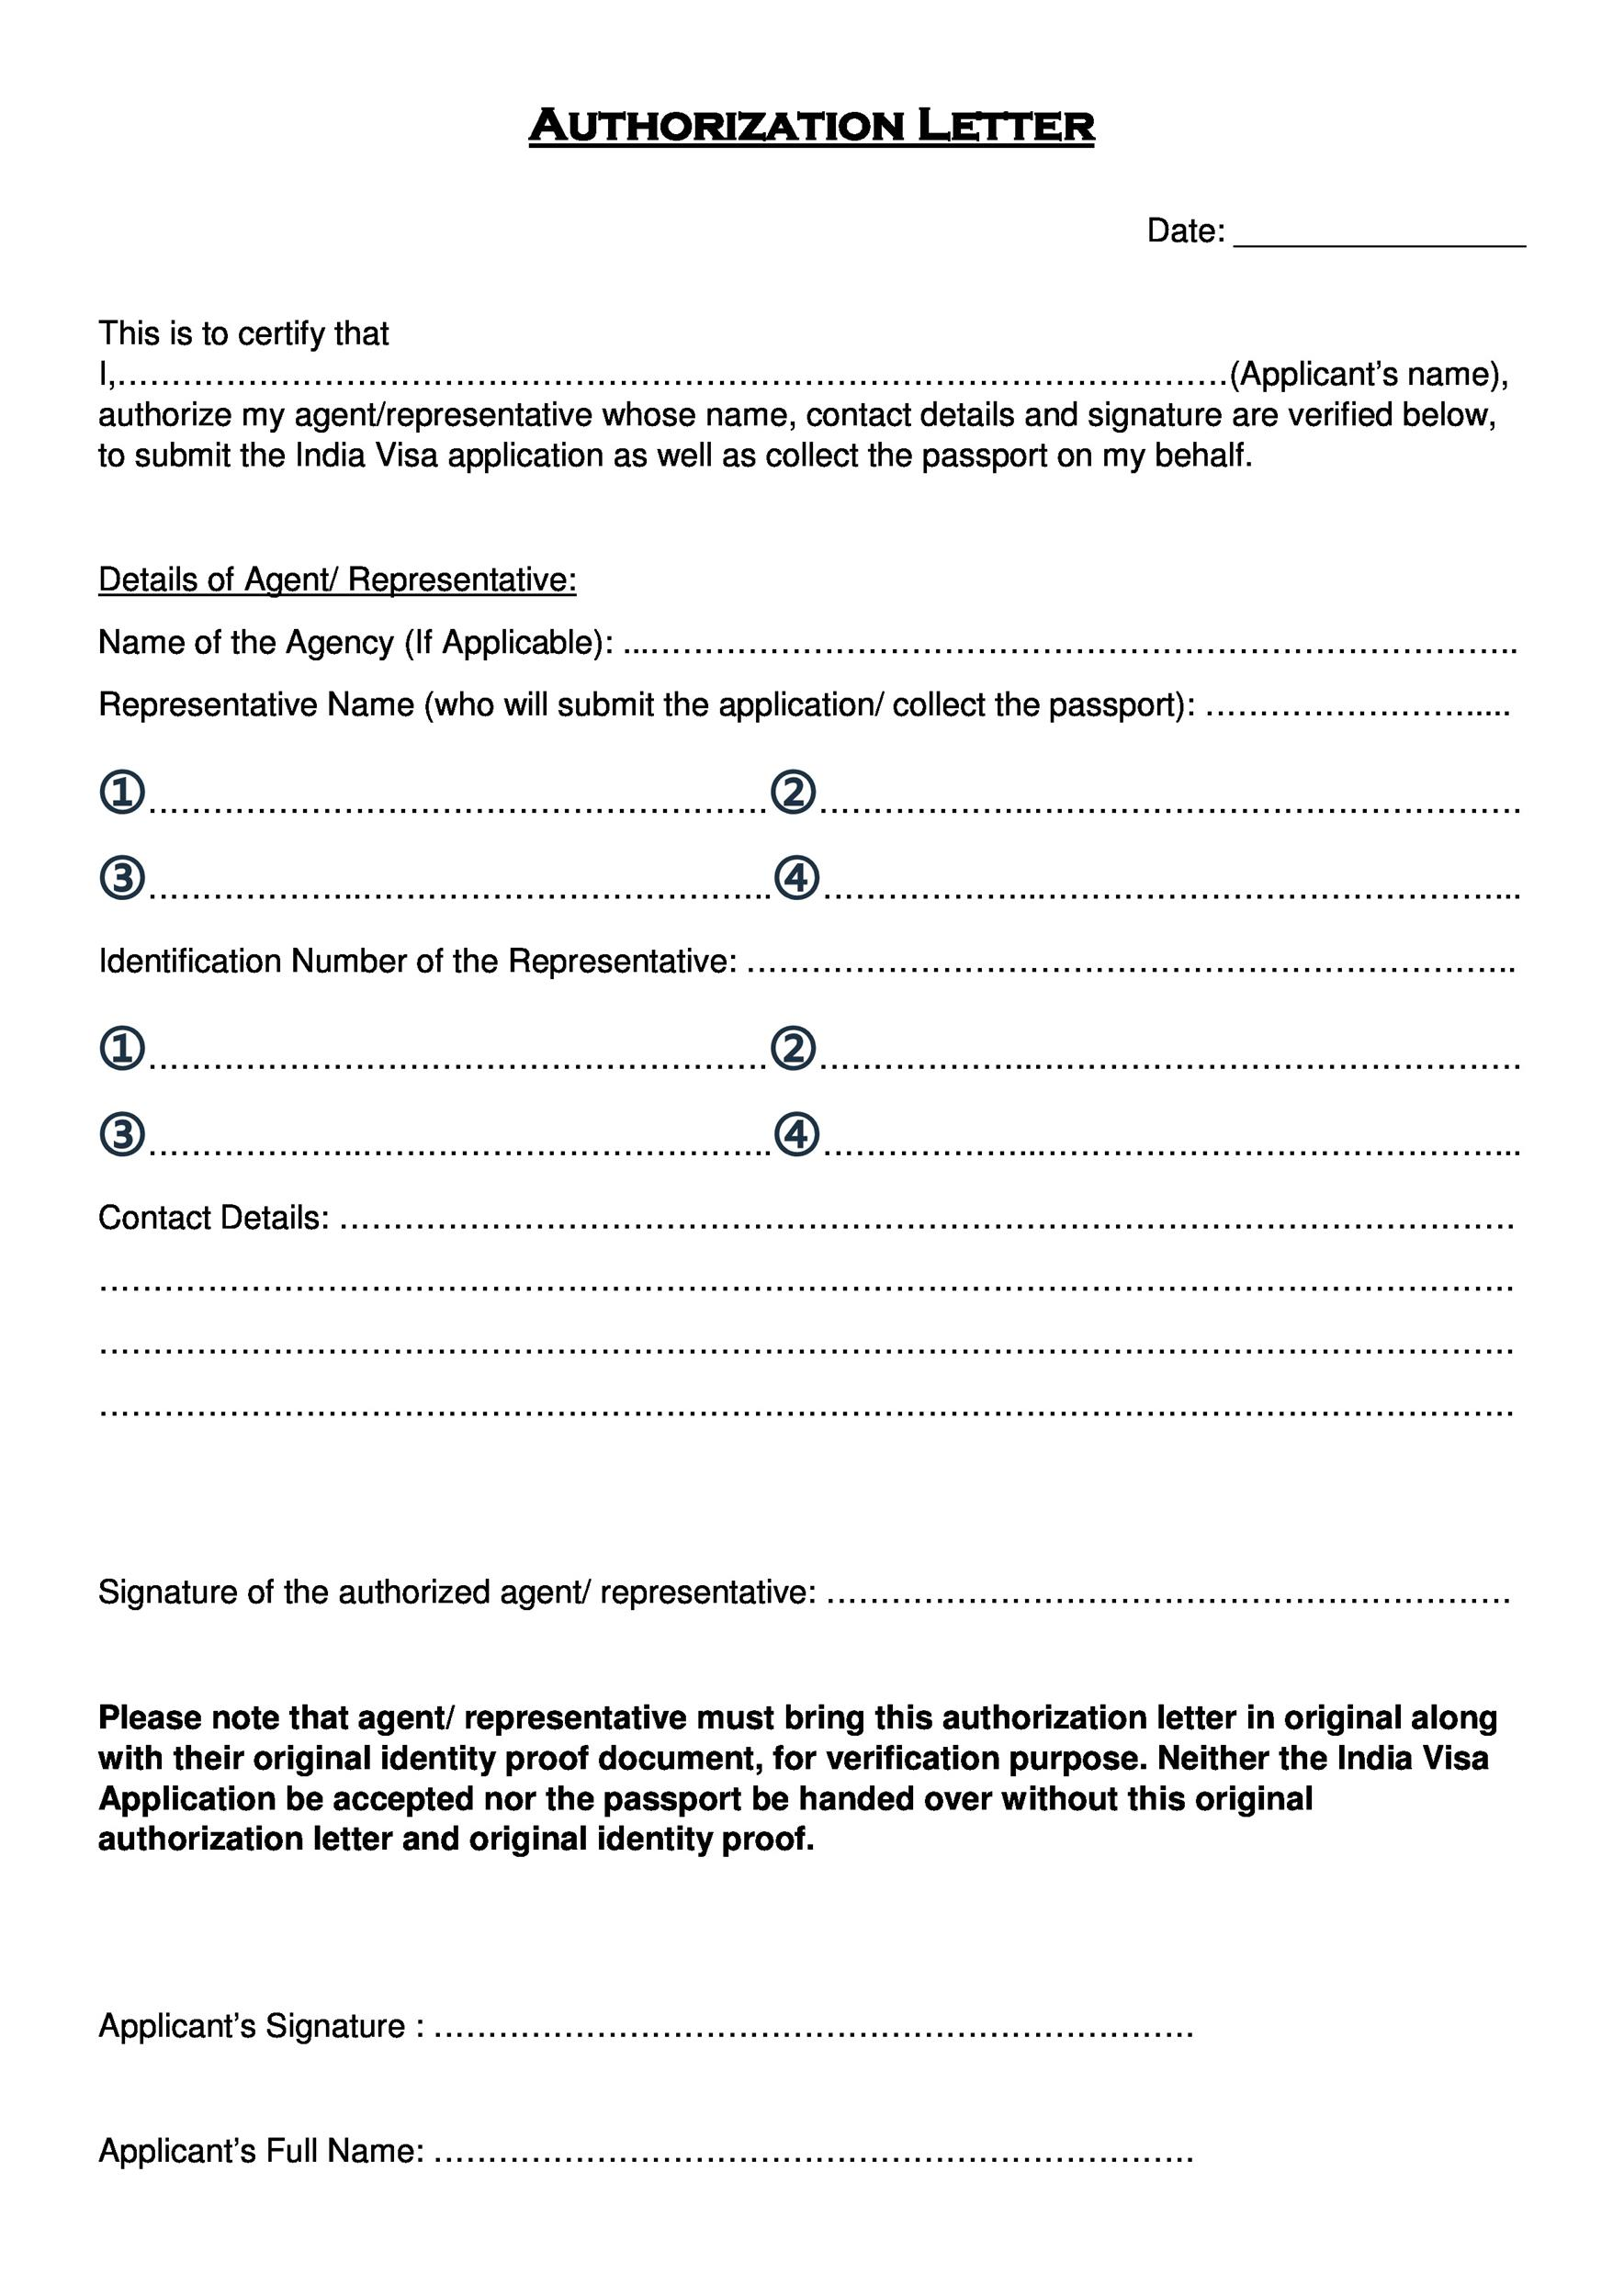 Parent Authorization Letter For Minors Traveling To Mexico 46 Authorization Letter Samples And Templates Template Lab